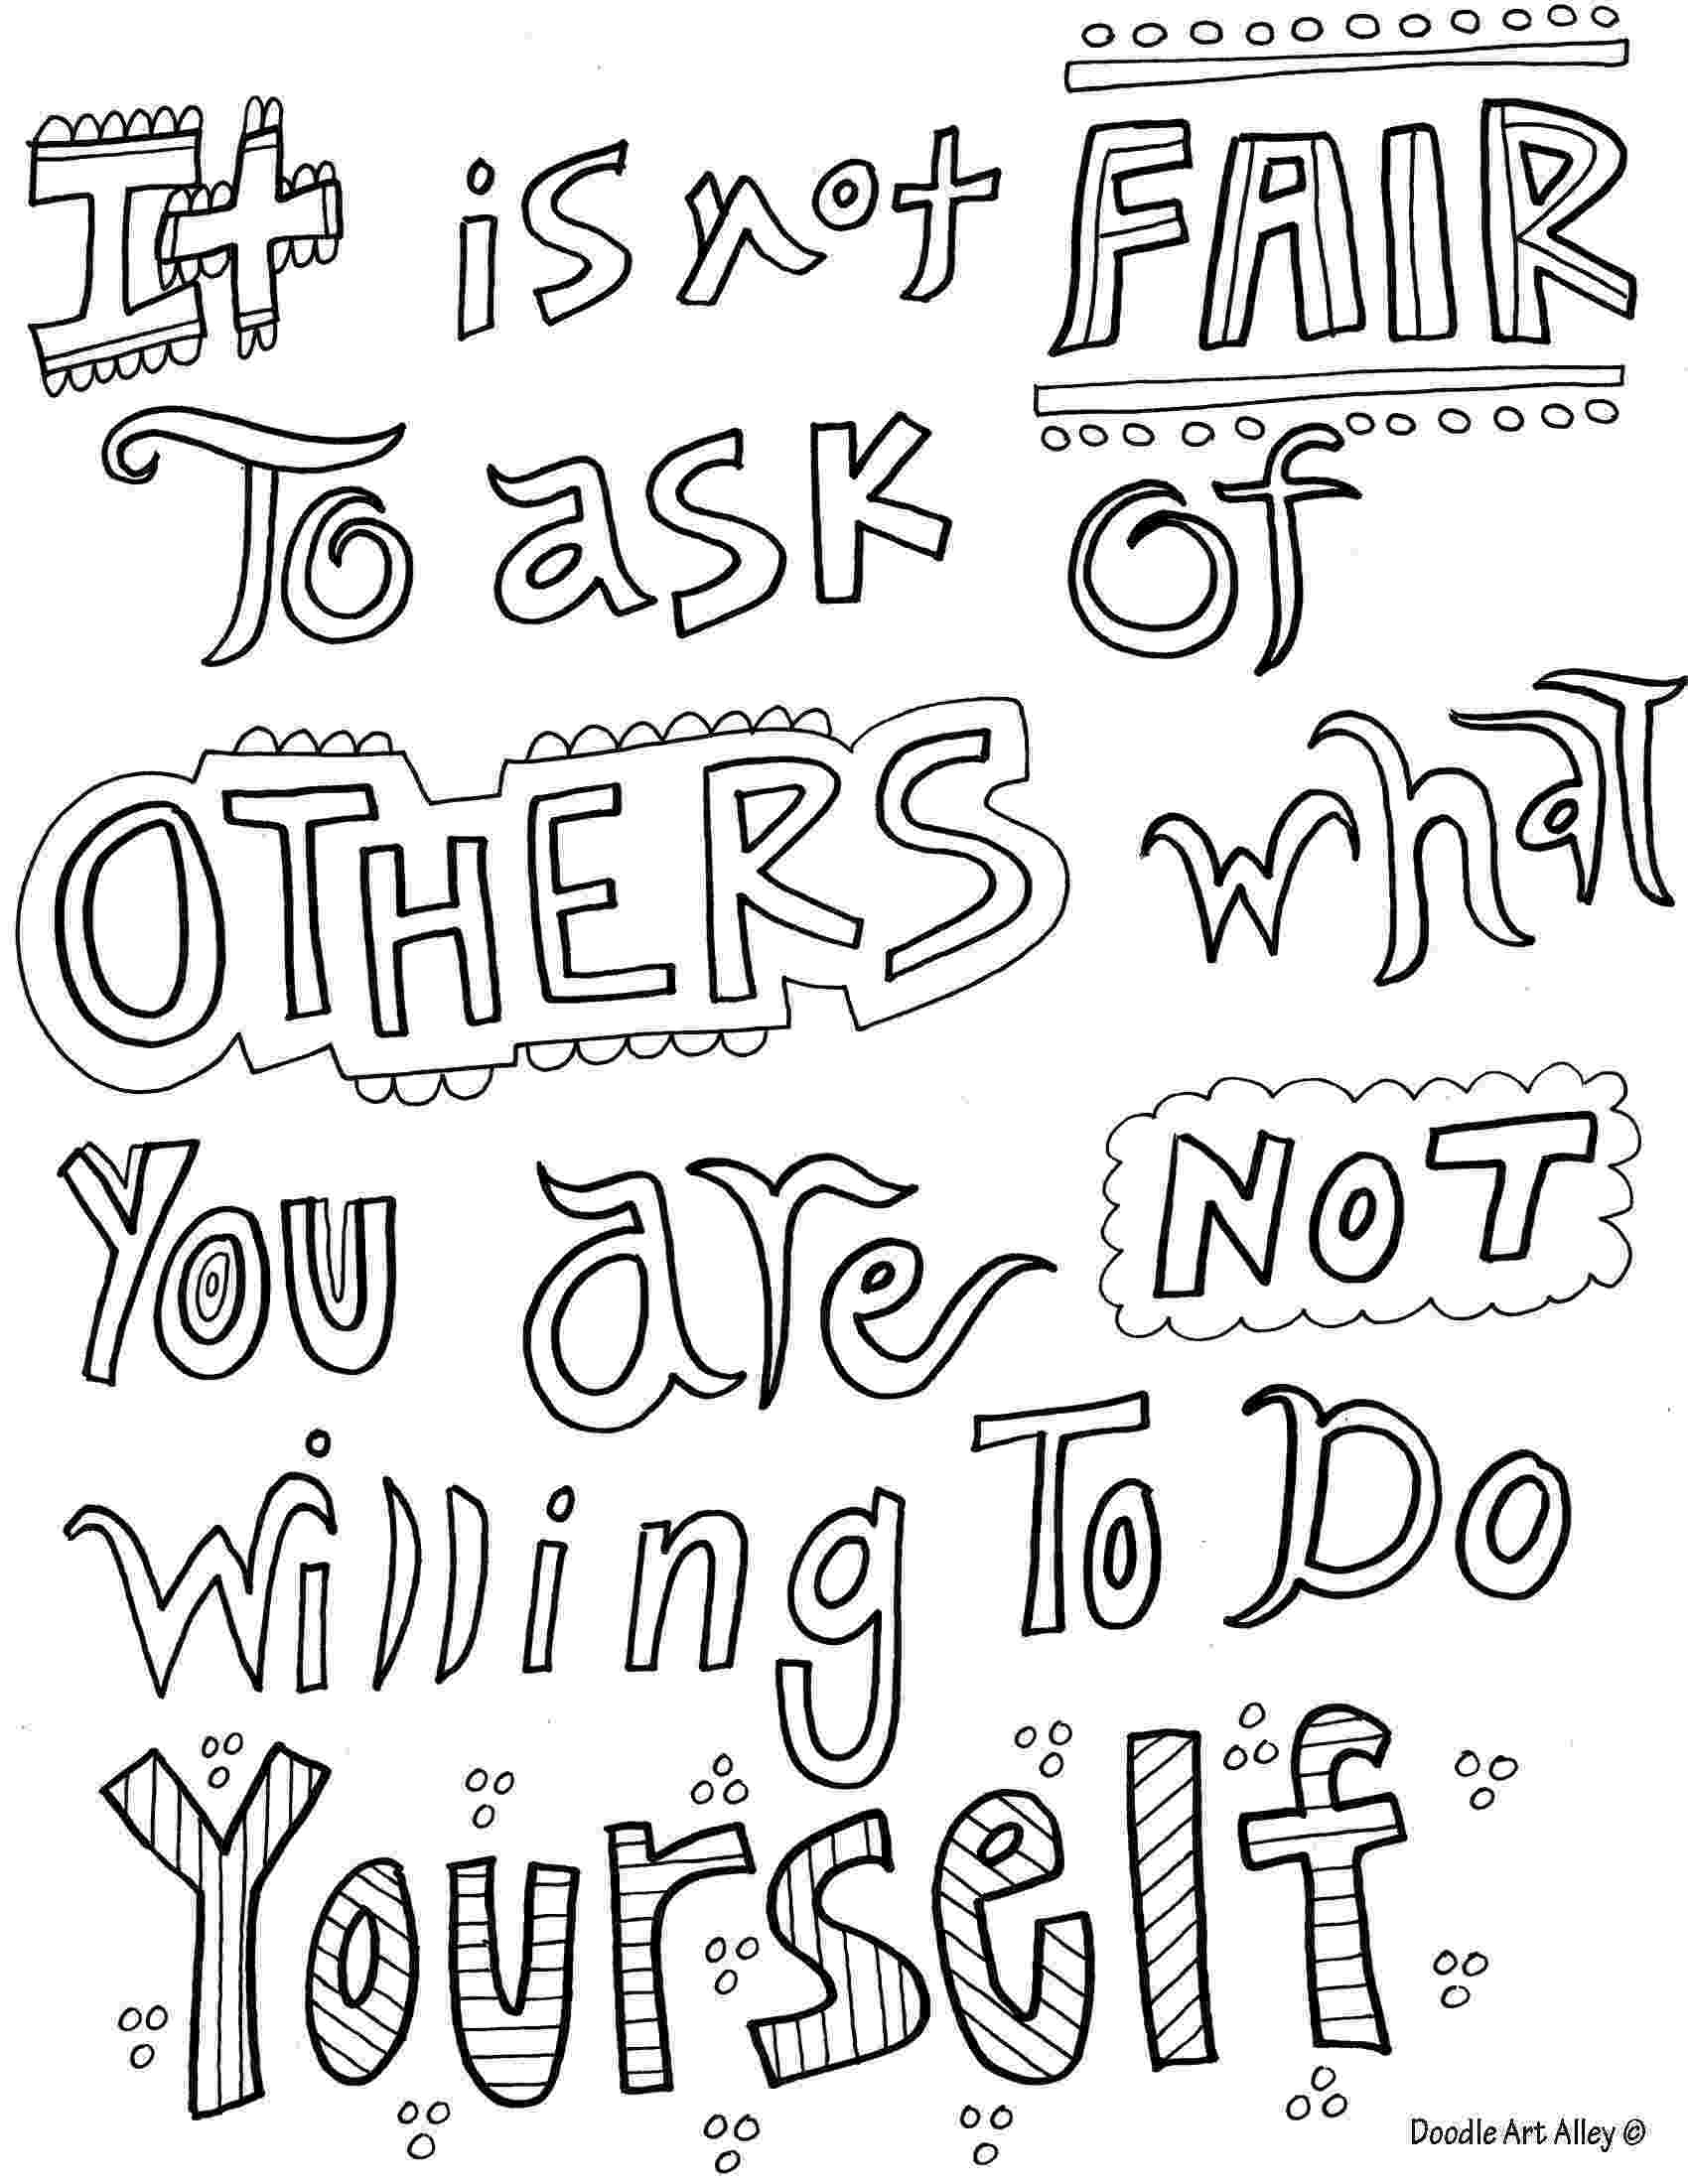 inspirational quotes colouring pages inspirational quotes coloring pages for adults quotes colouring inspirational pages 1 1